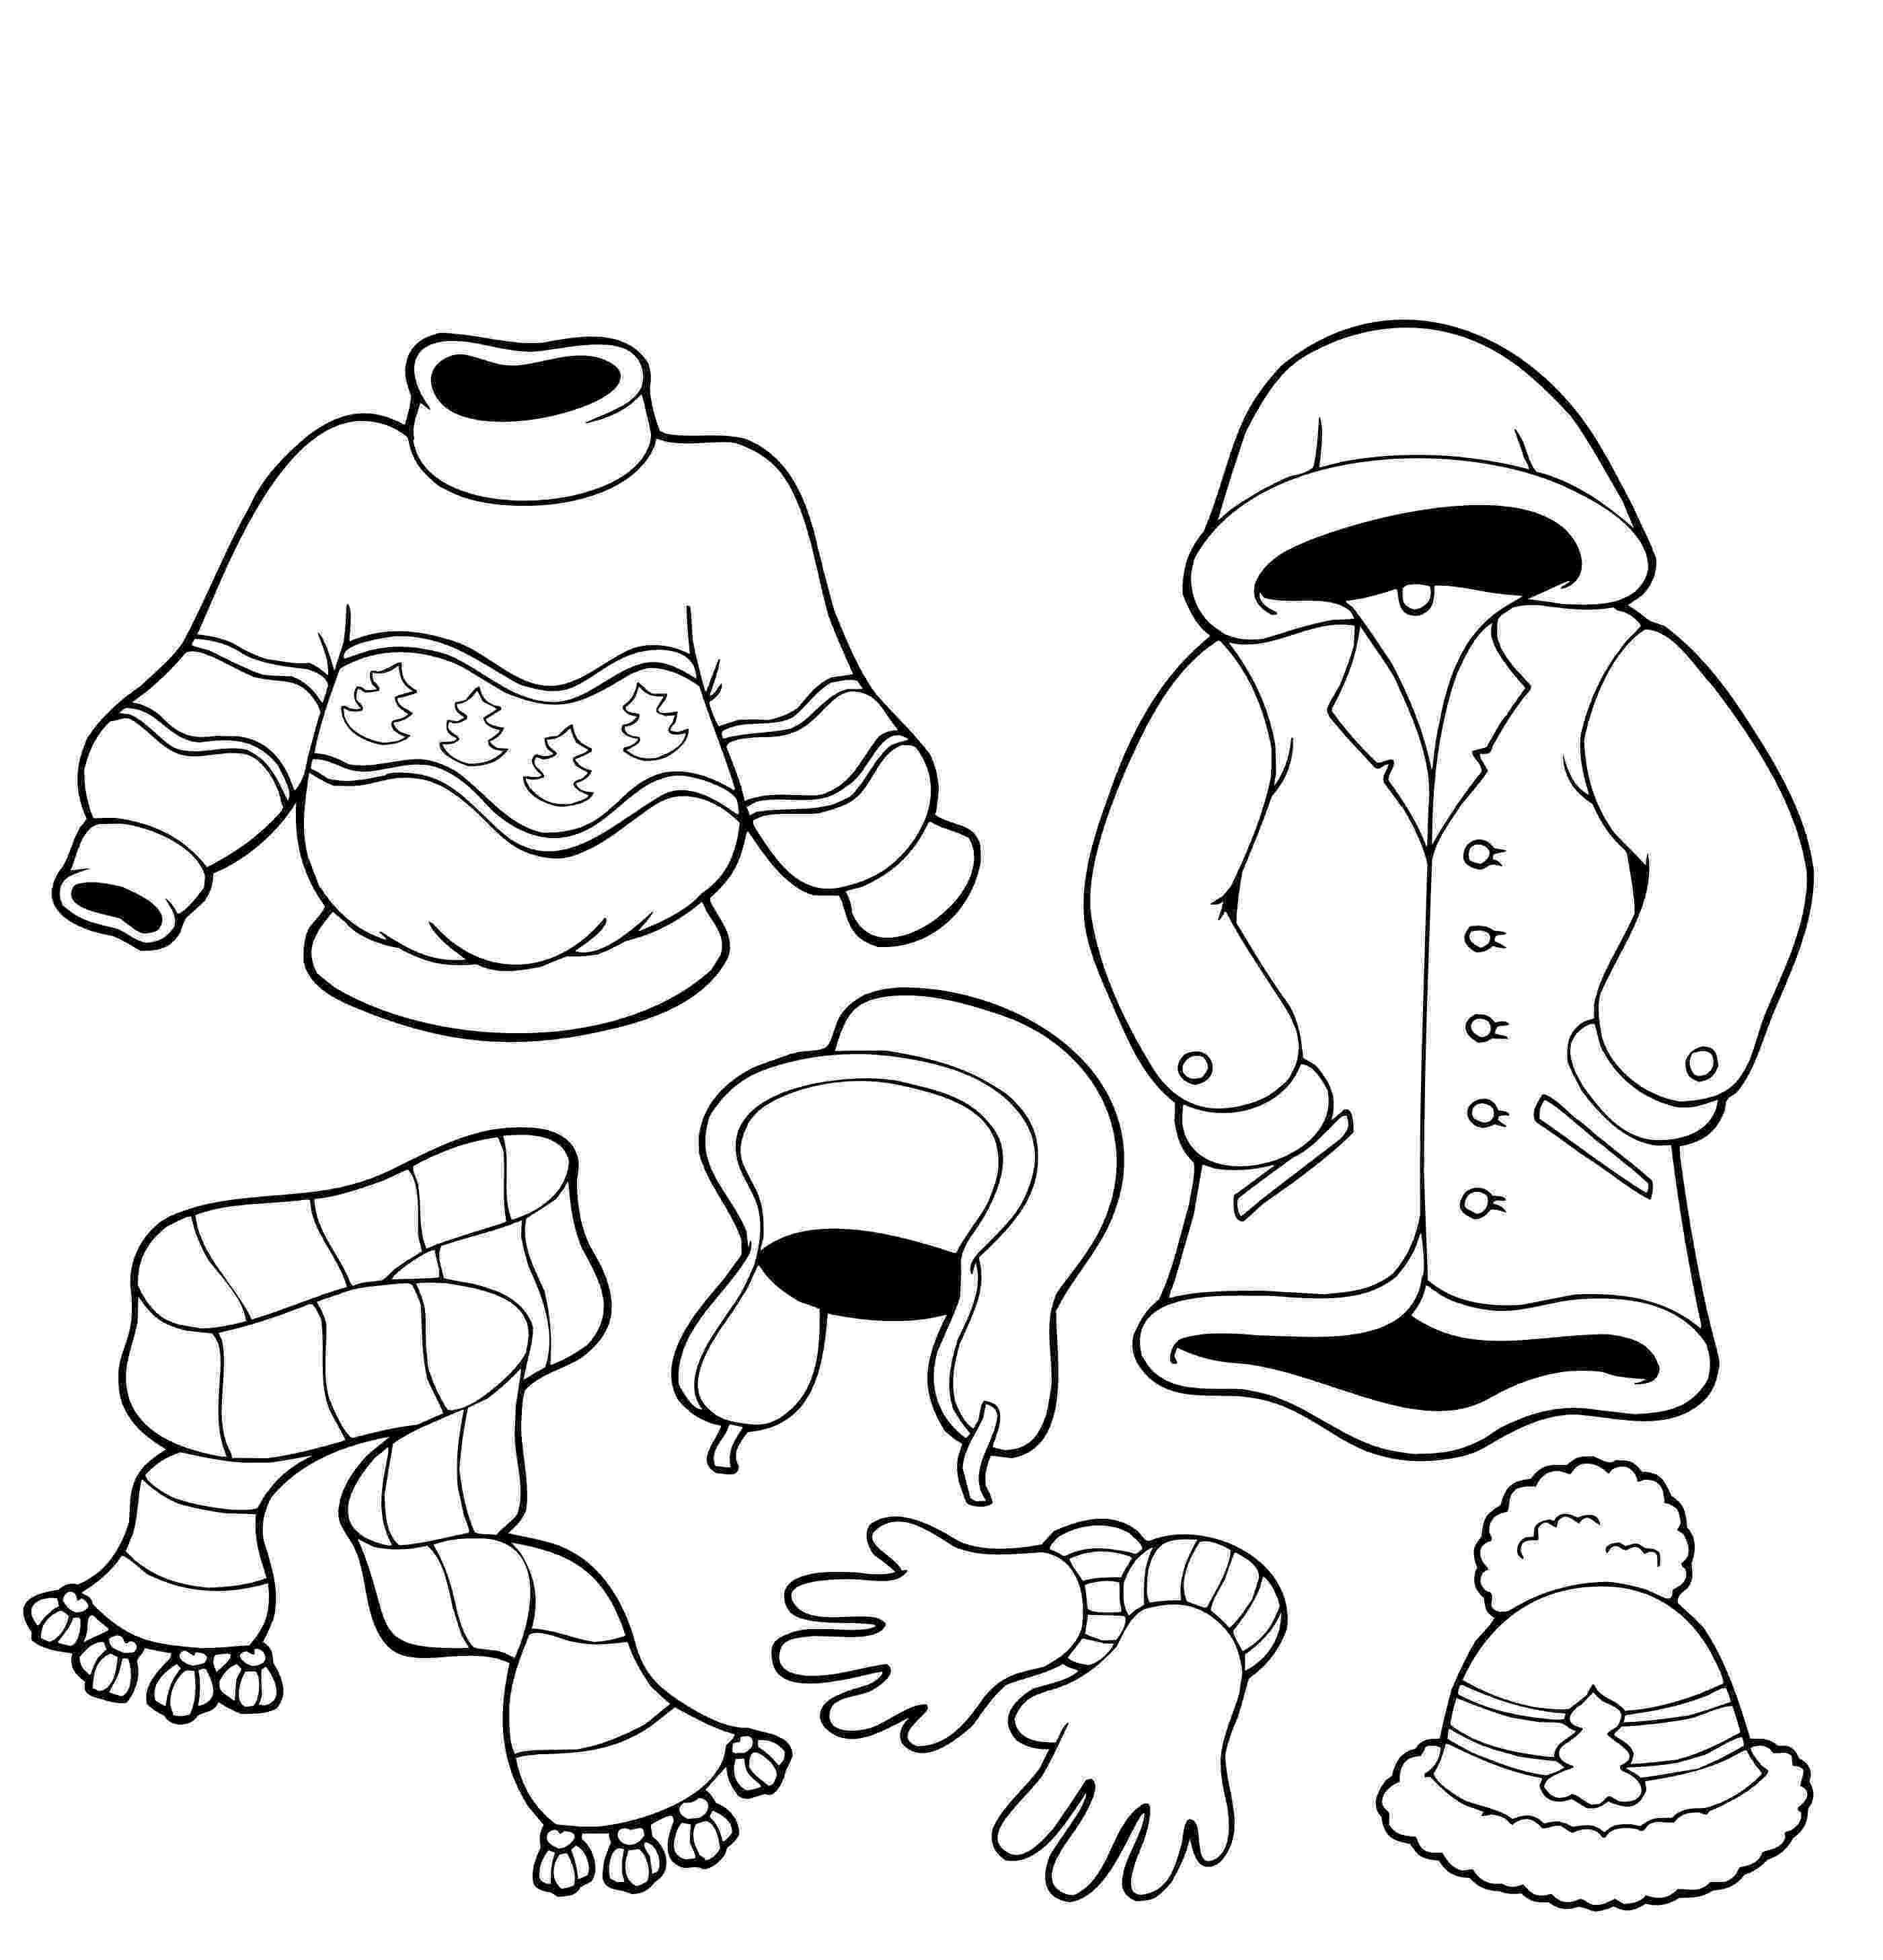 winter coloring book sports photograph coloring pages kids winter sports coloring book winter